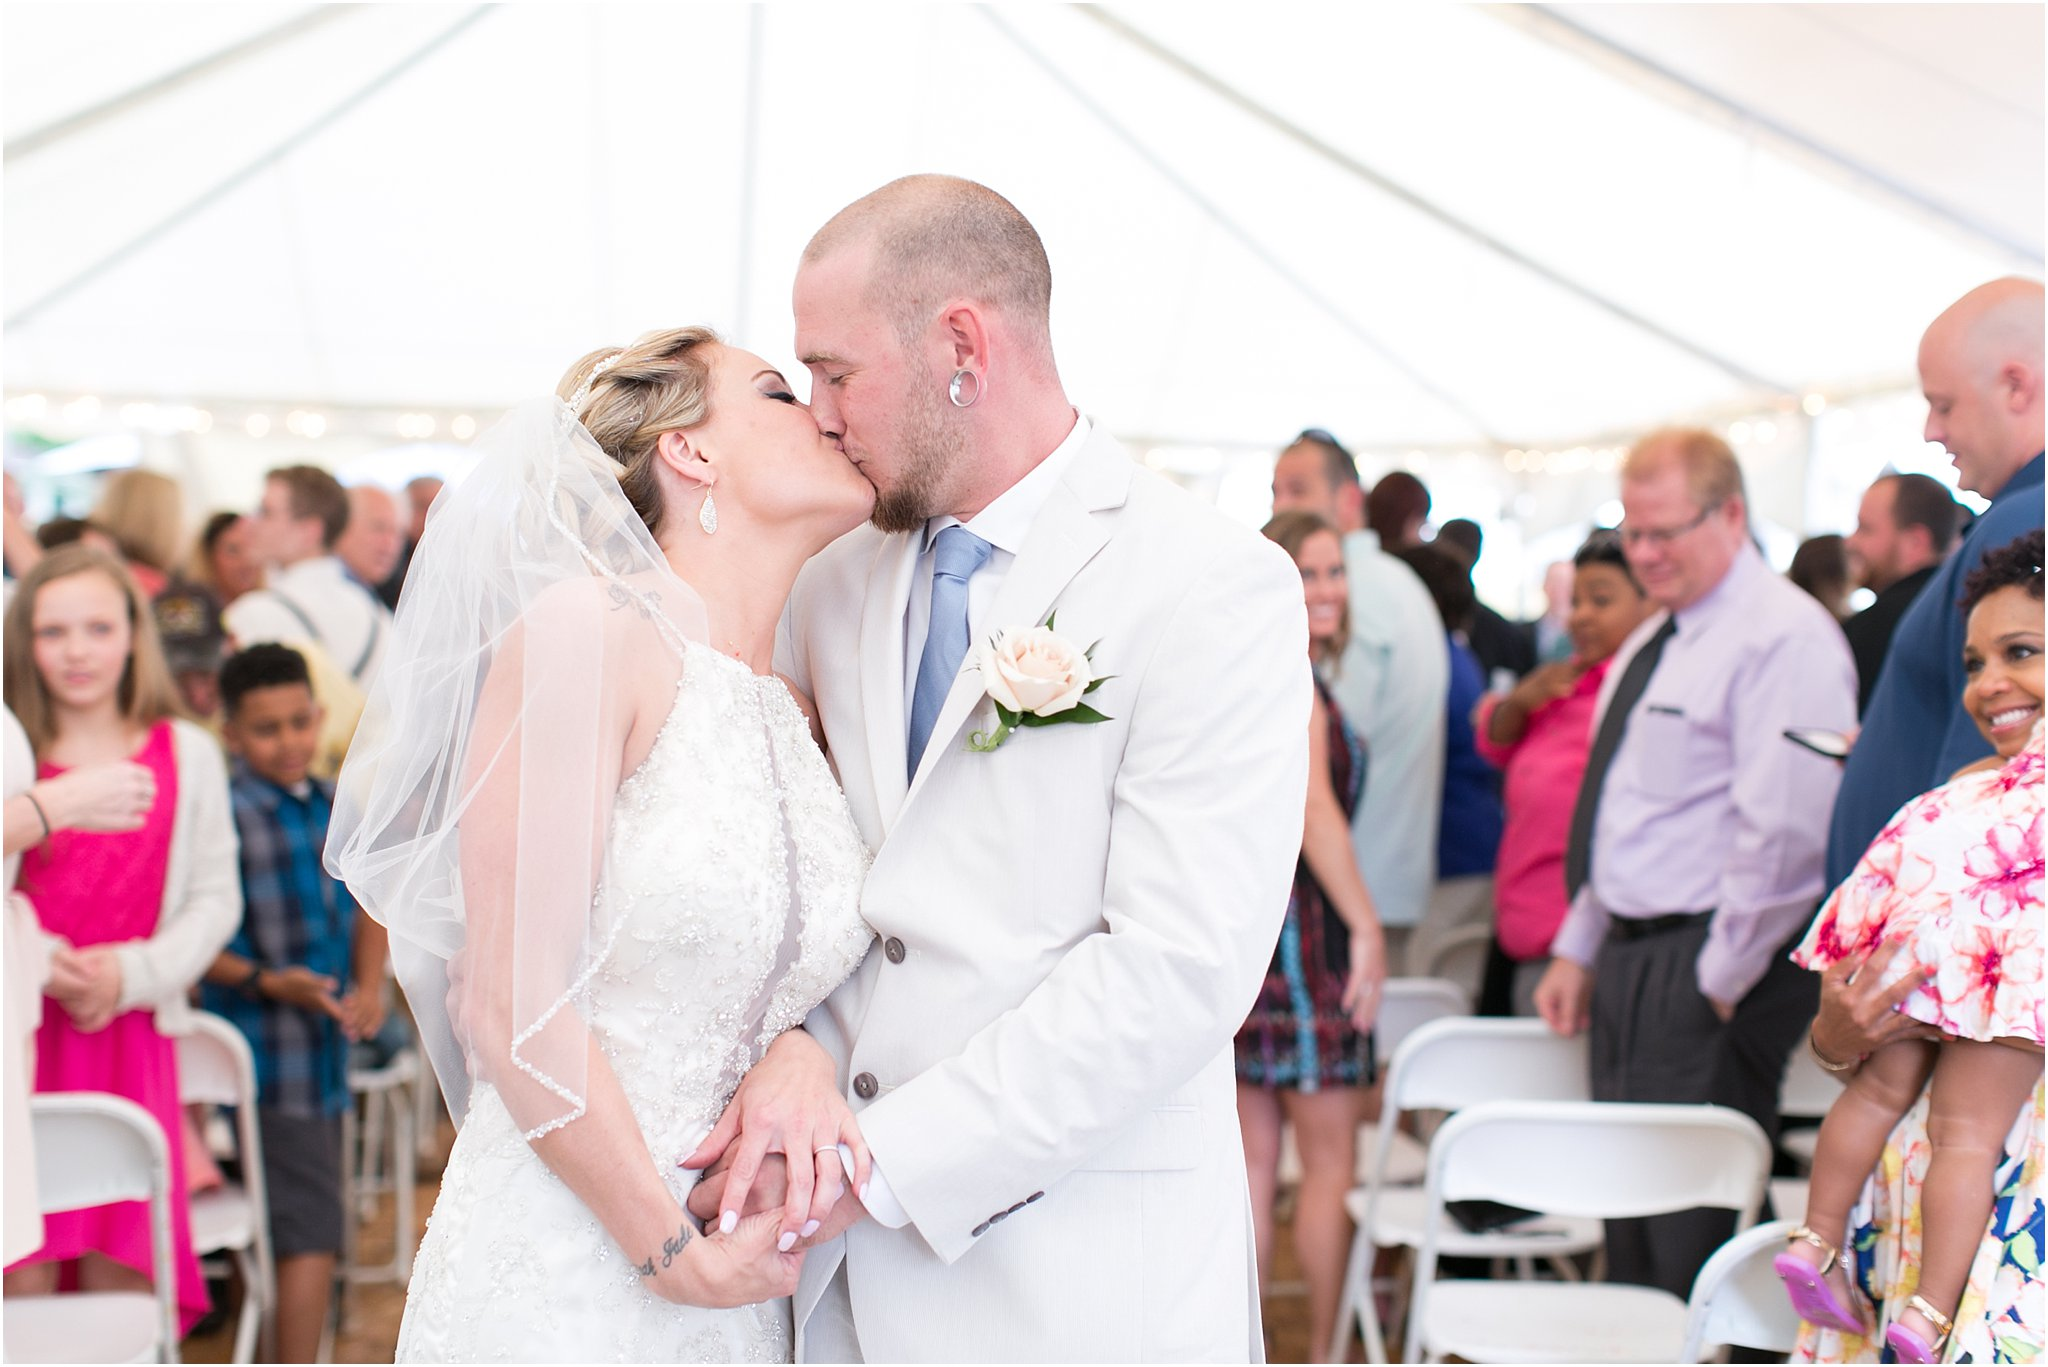 jessica_ryan_photography_virginia_virginiabeachweddingphotographer_studioIdo_backyardwedding_waterfrontwedding_1667